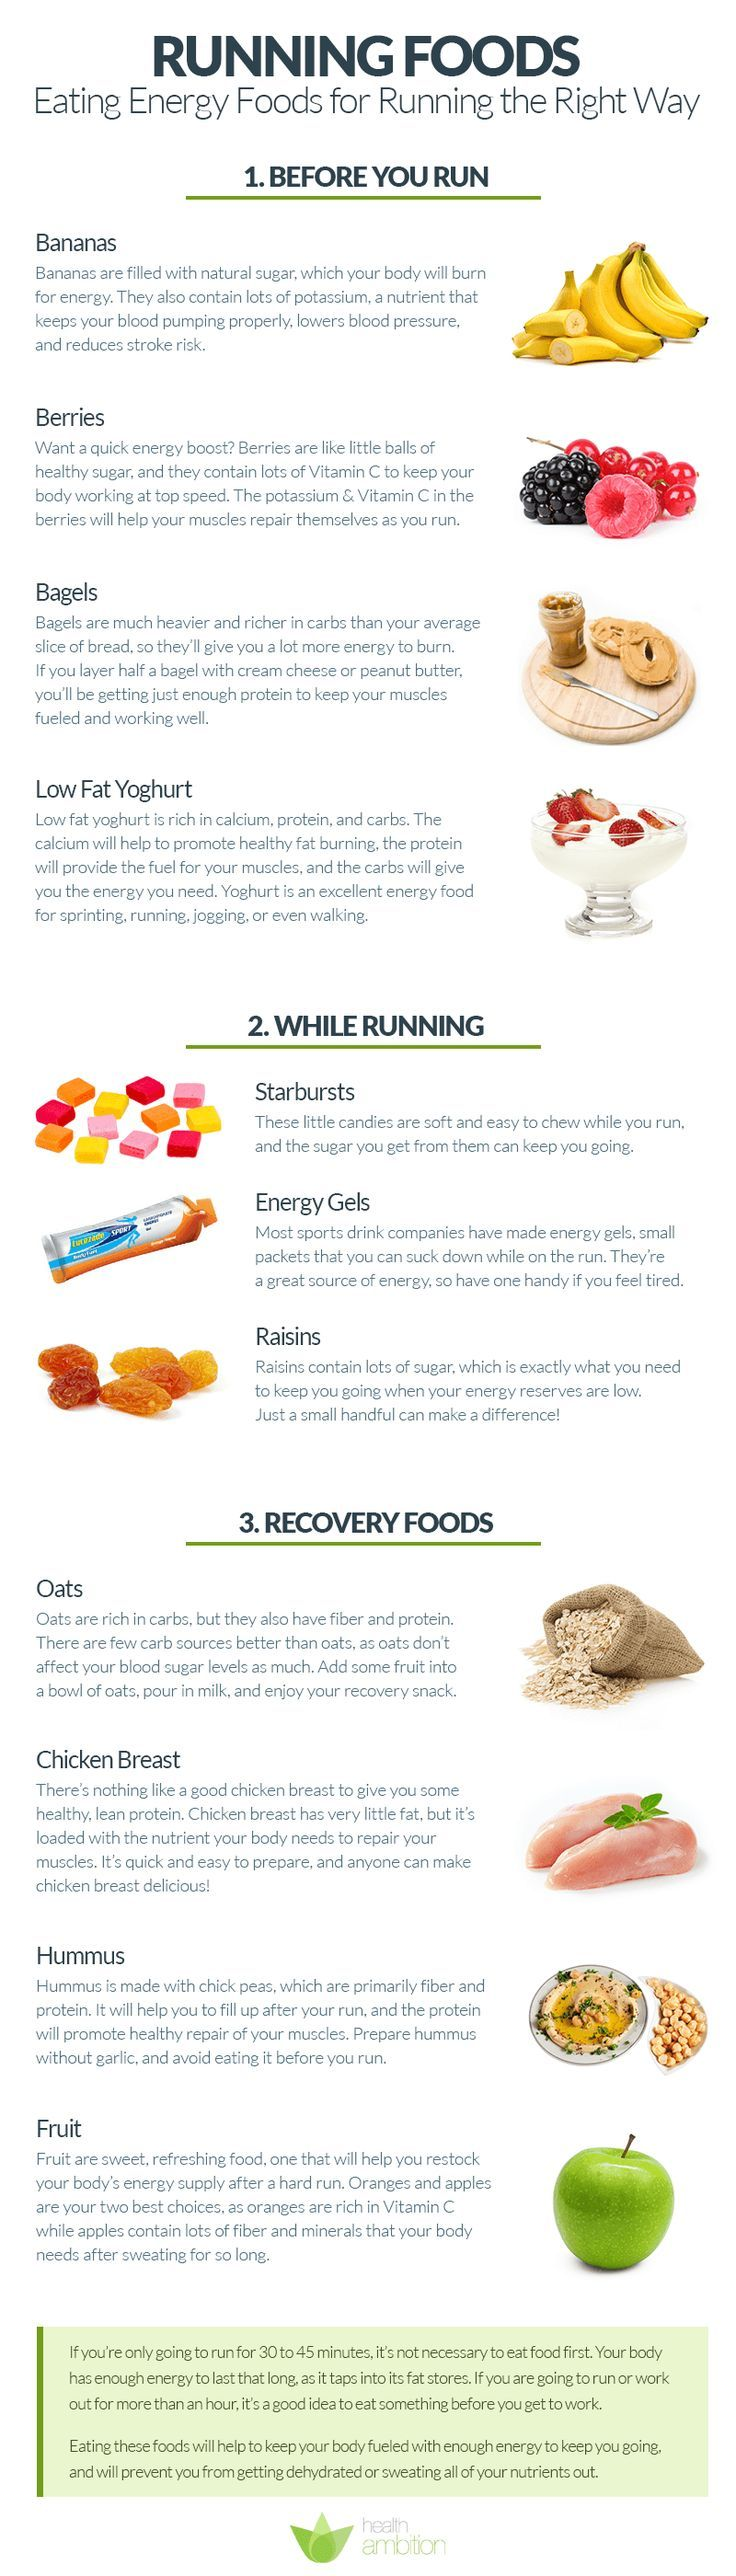 Is it best to take whey protein before or after Workout is a question that many people ask. The best time to take whey protein is after your workout.